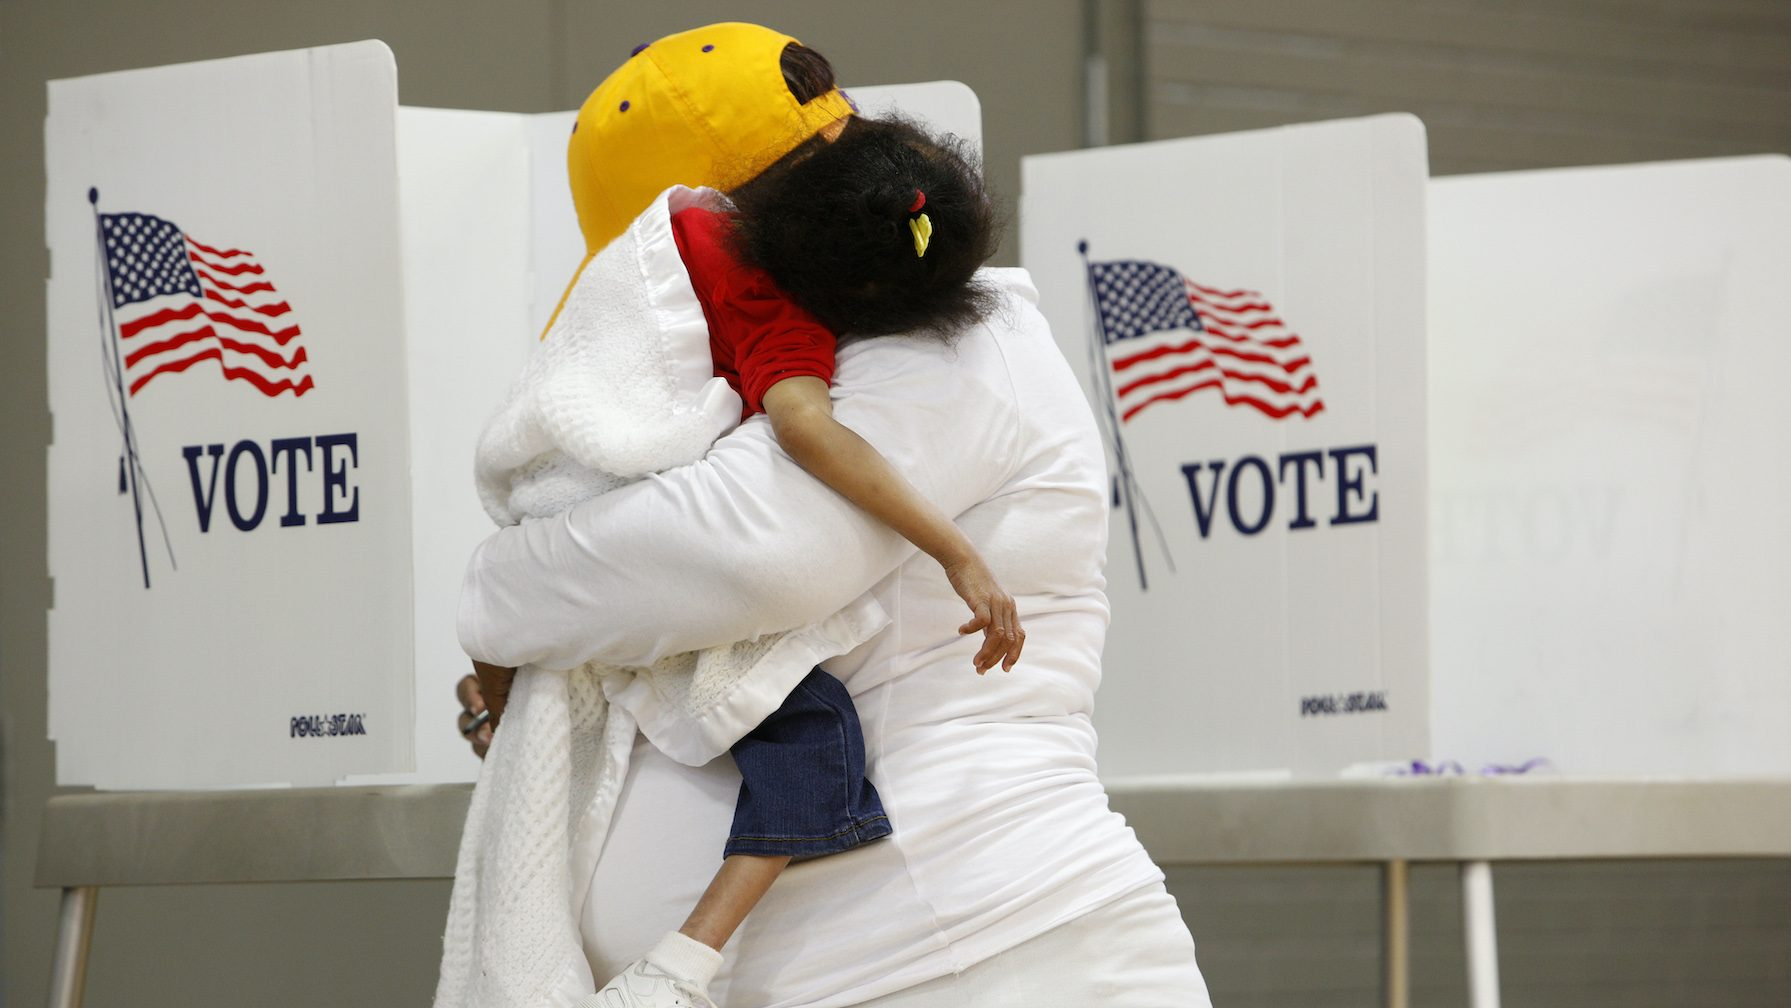 A mother carries her sleeping child while voting during the U.S. general election in Greenville, North Carolina